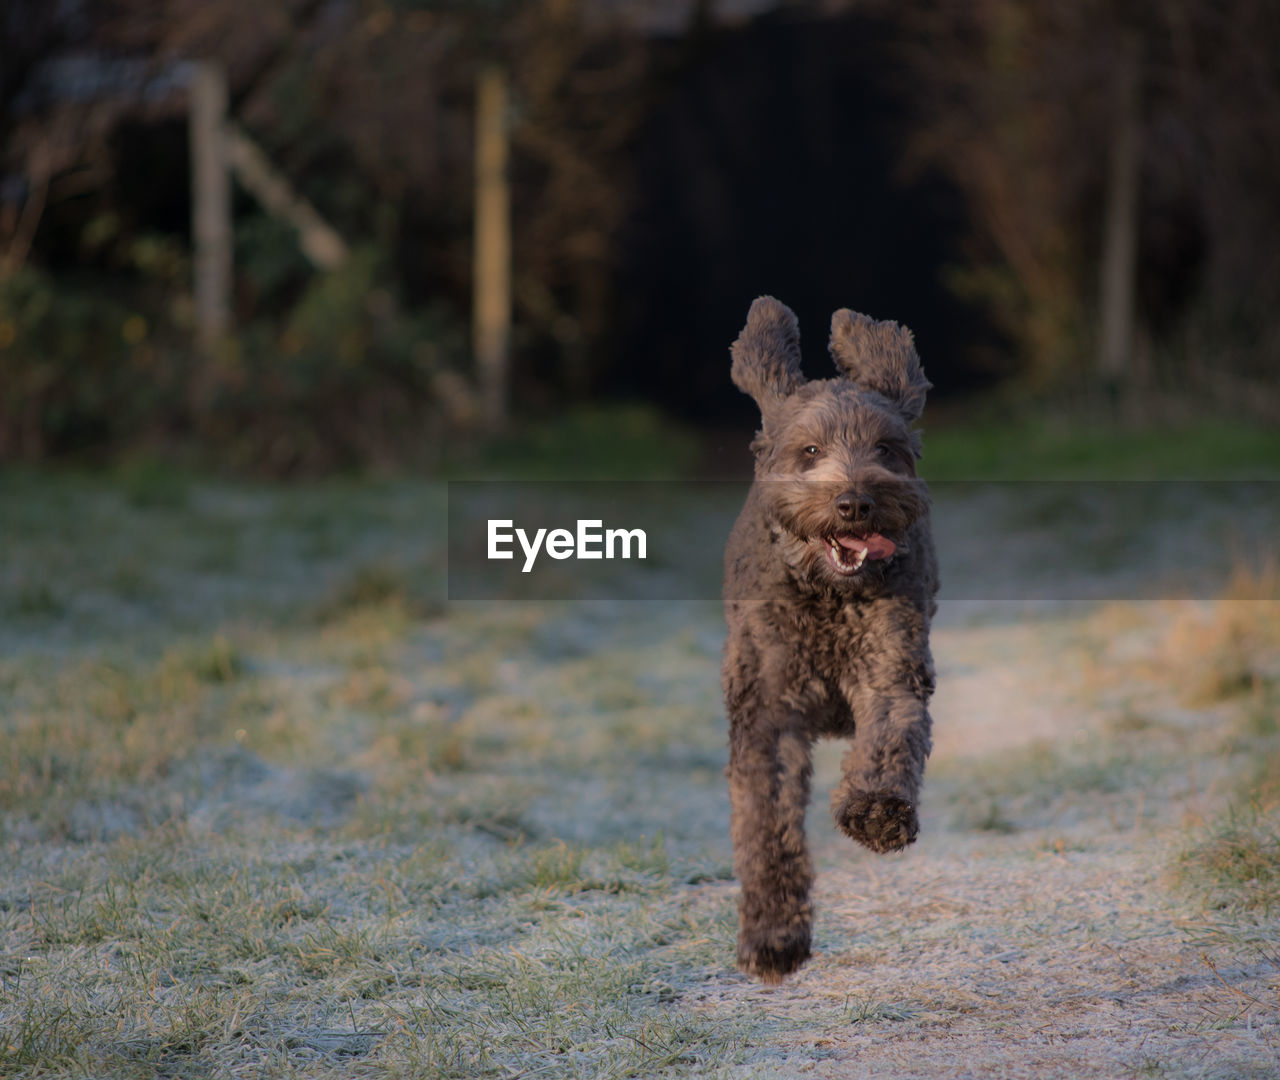 mammal, one animal, animal, domestic, animal themes, pets, dog, canine, domestic animals, vertebrate, running, focus on foreground, field, day, no people, land, nature, full length, motion, outdoors